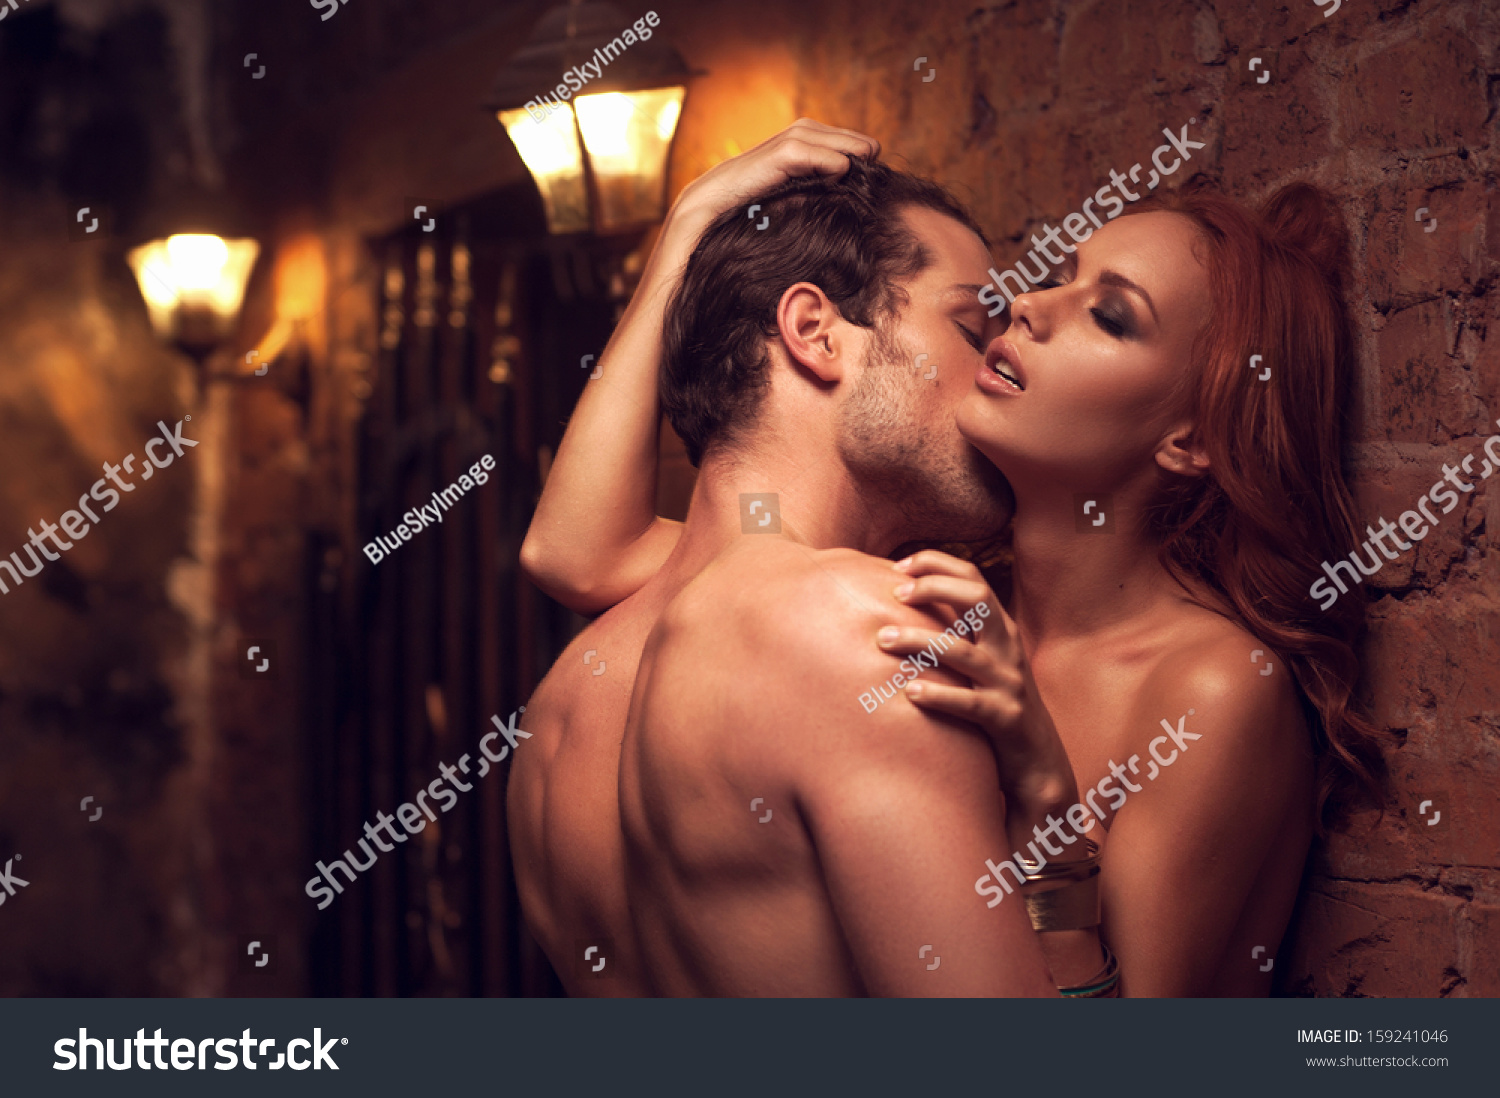 Stock photo naked women fucking naked men, swinging sofa bed